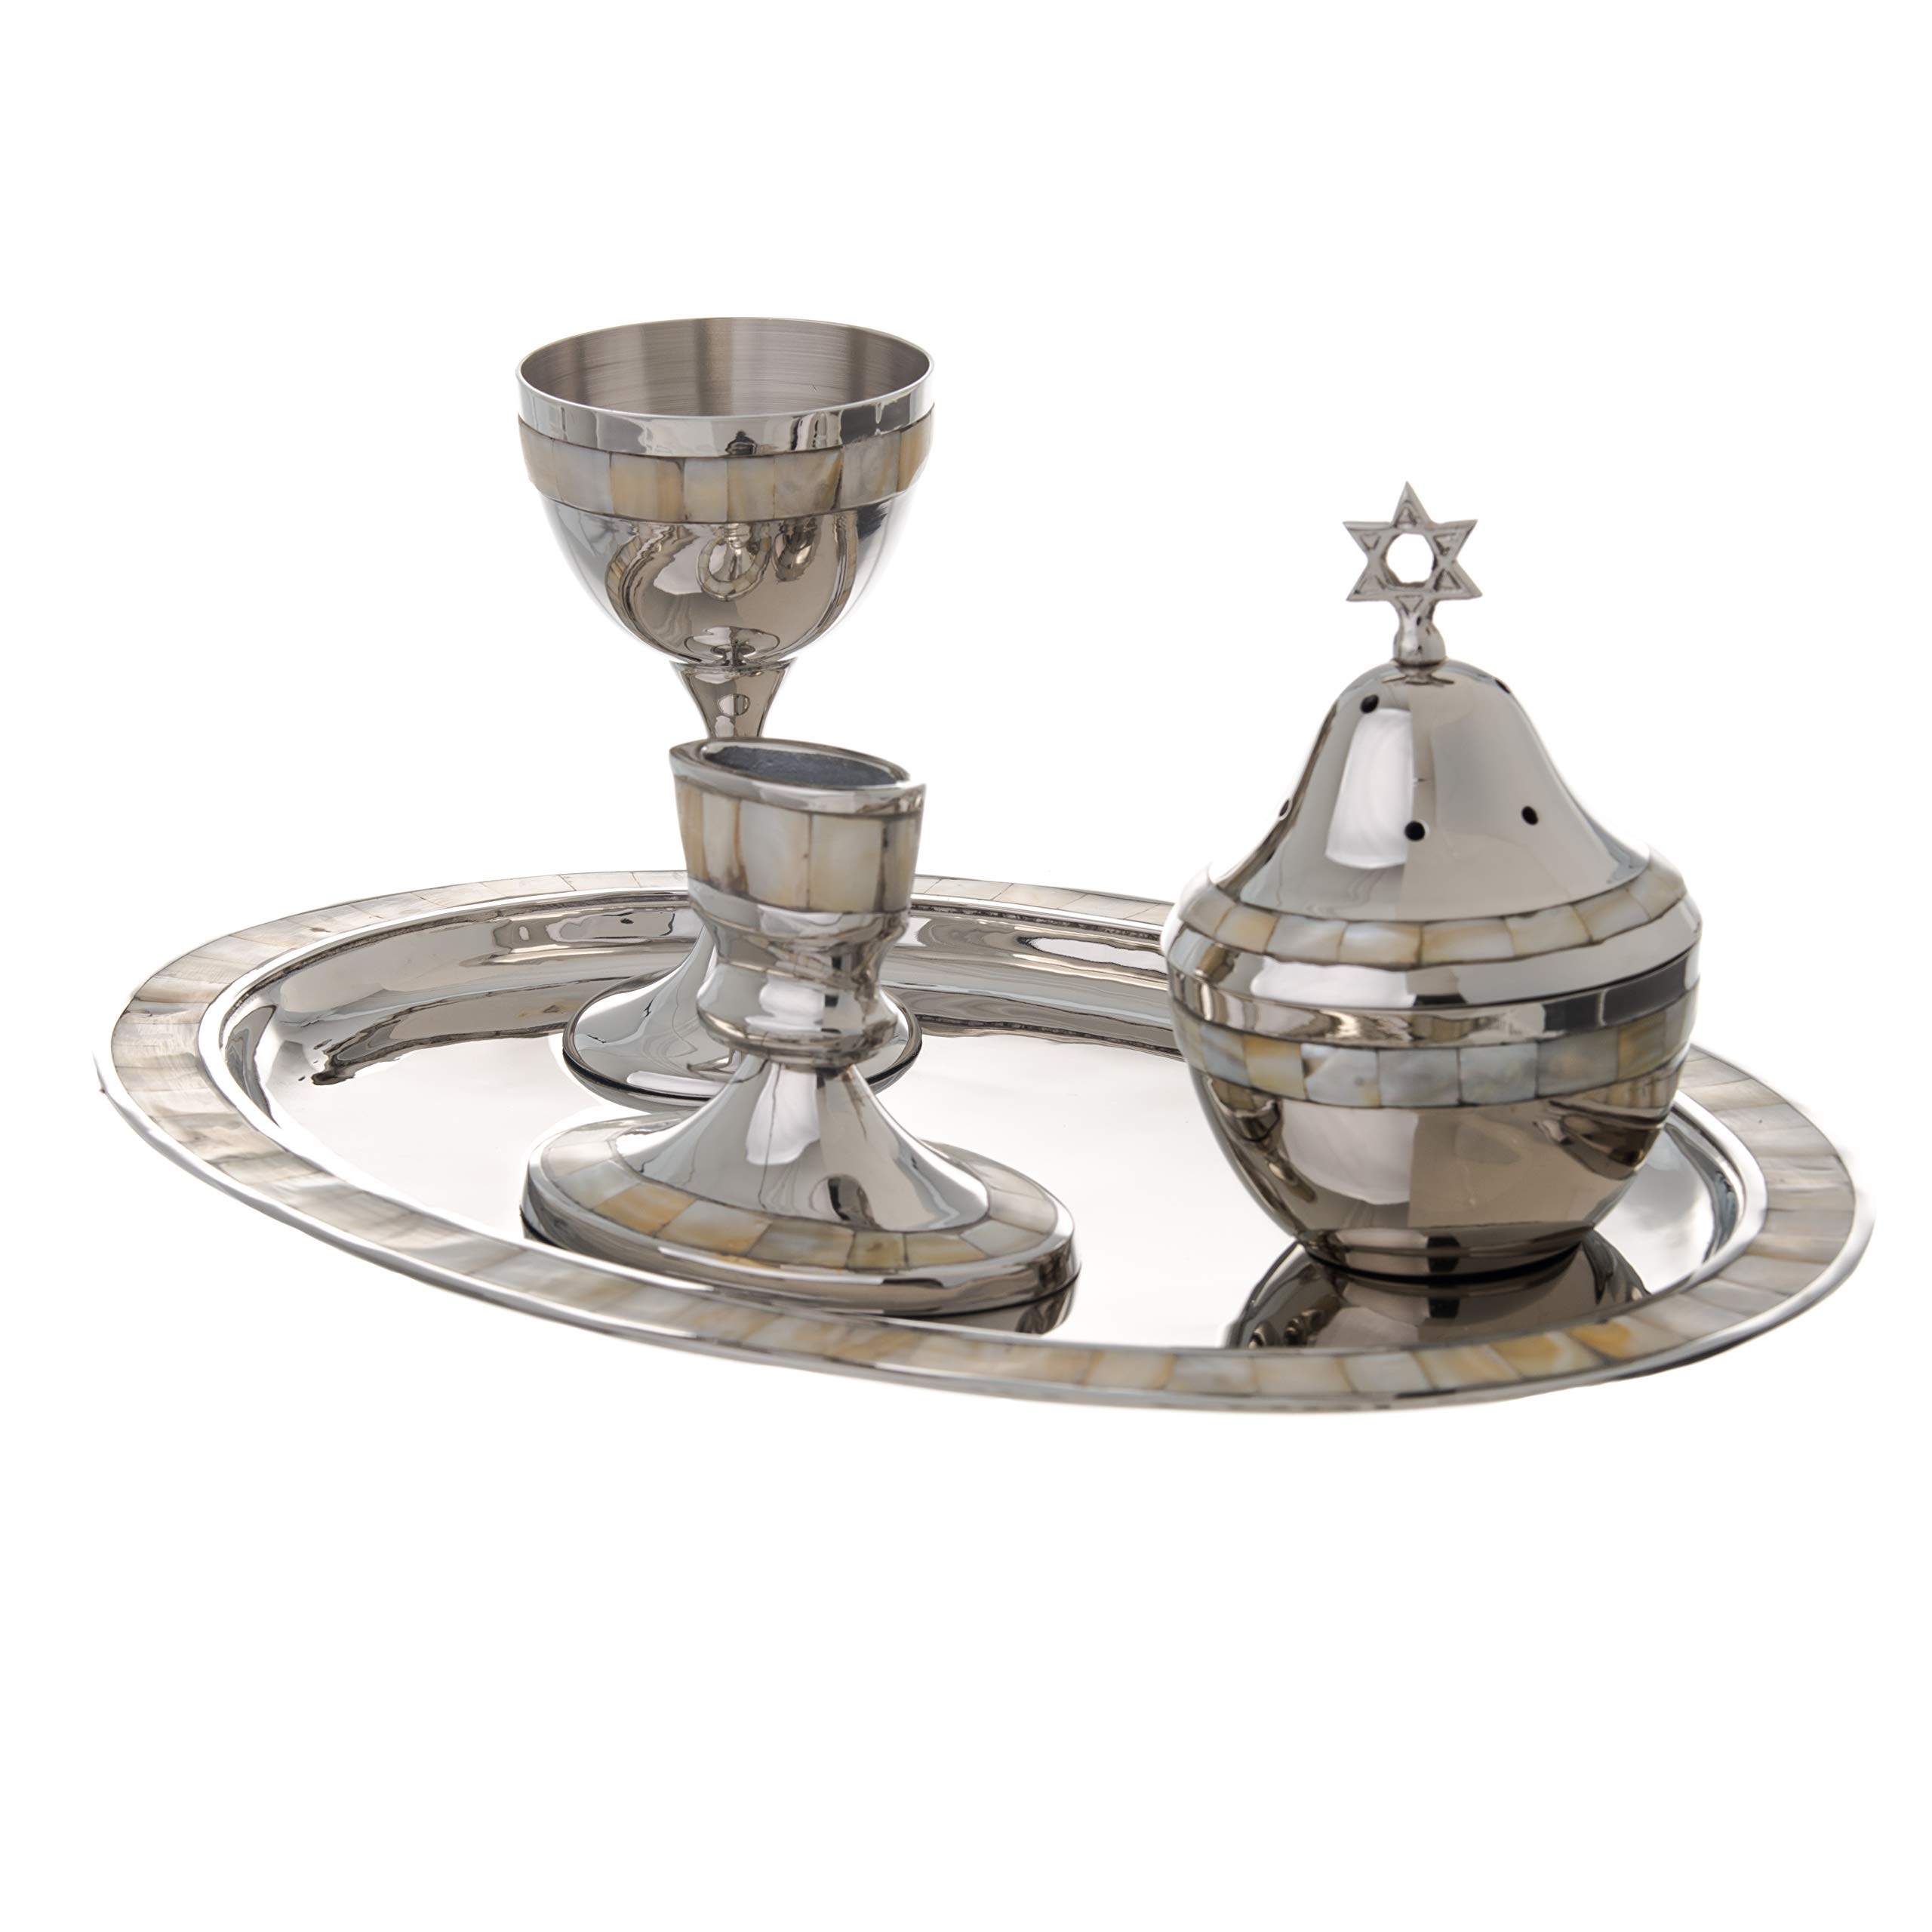 Highly Polished Non-Tarnishing Metal Havdalah Set with Mother of Pearl Design by copa